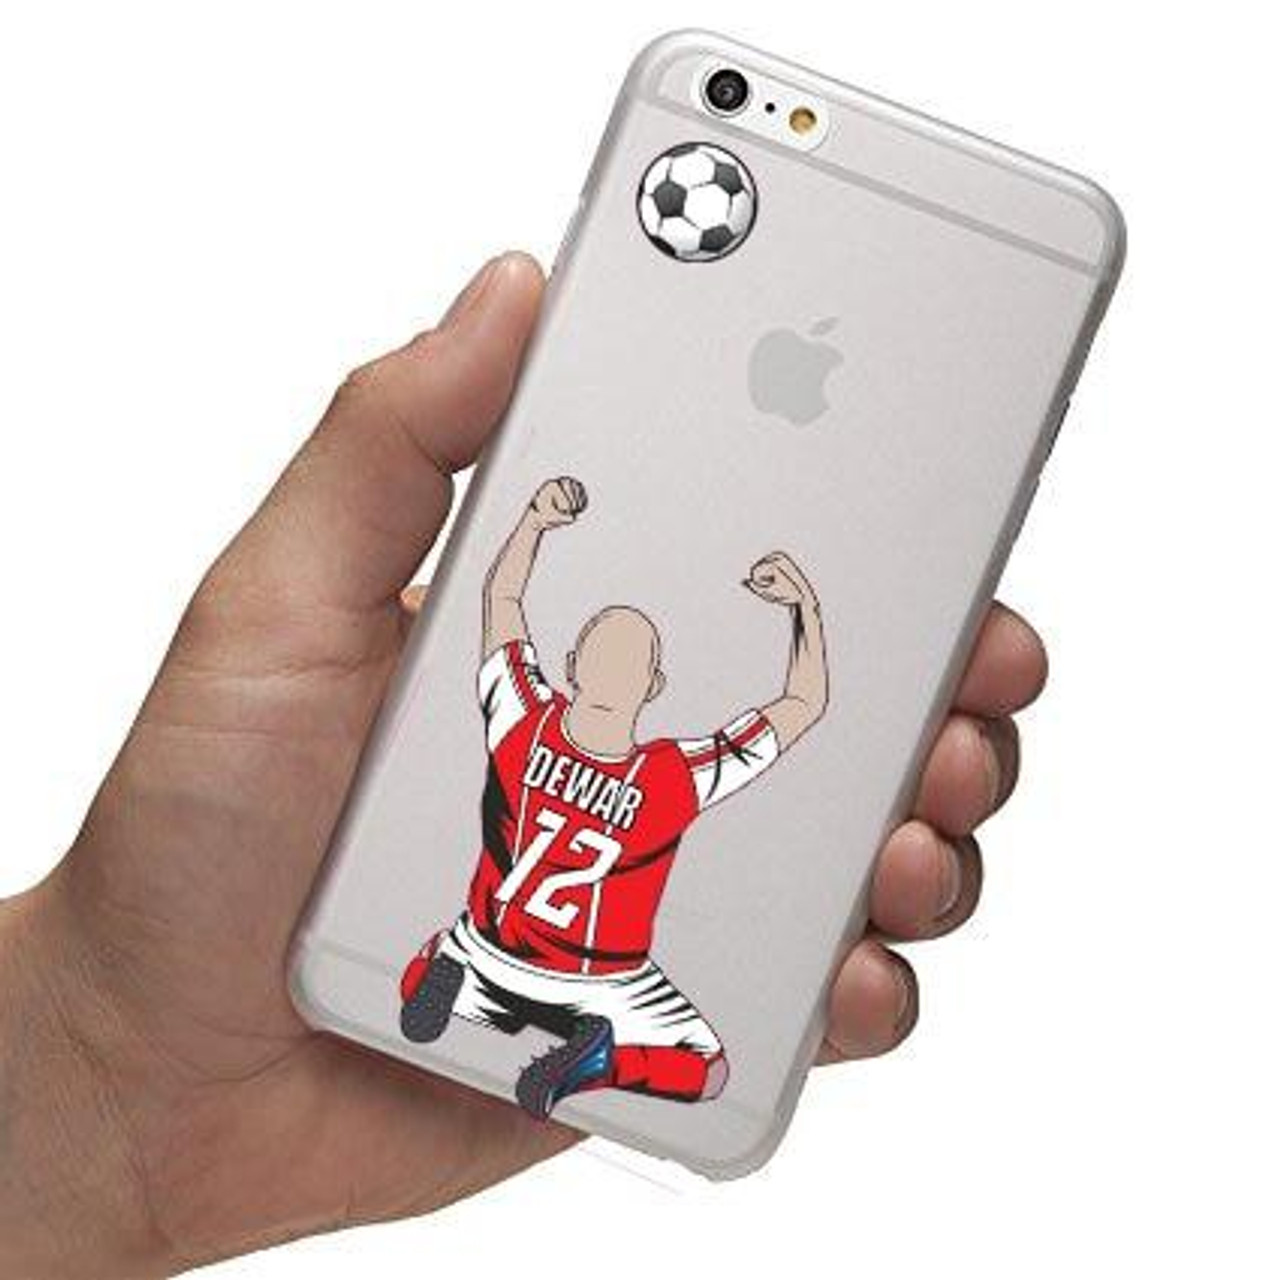 Celly Decal-Soccer